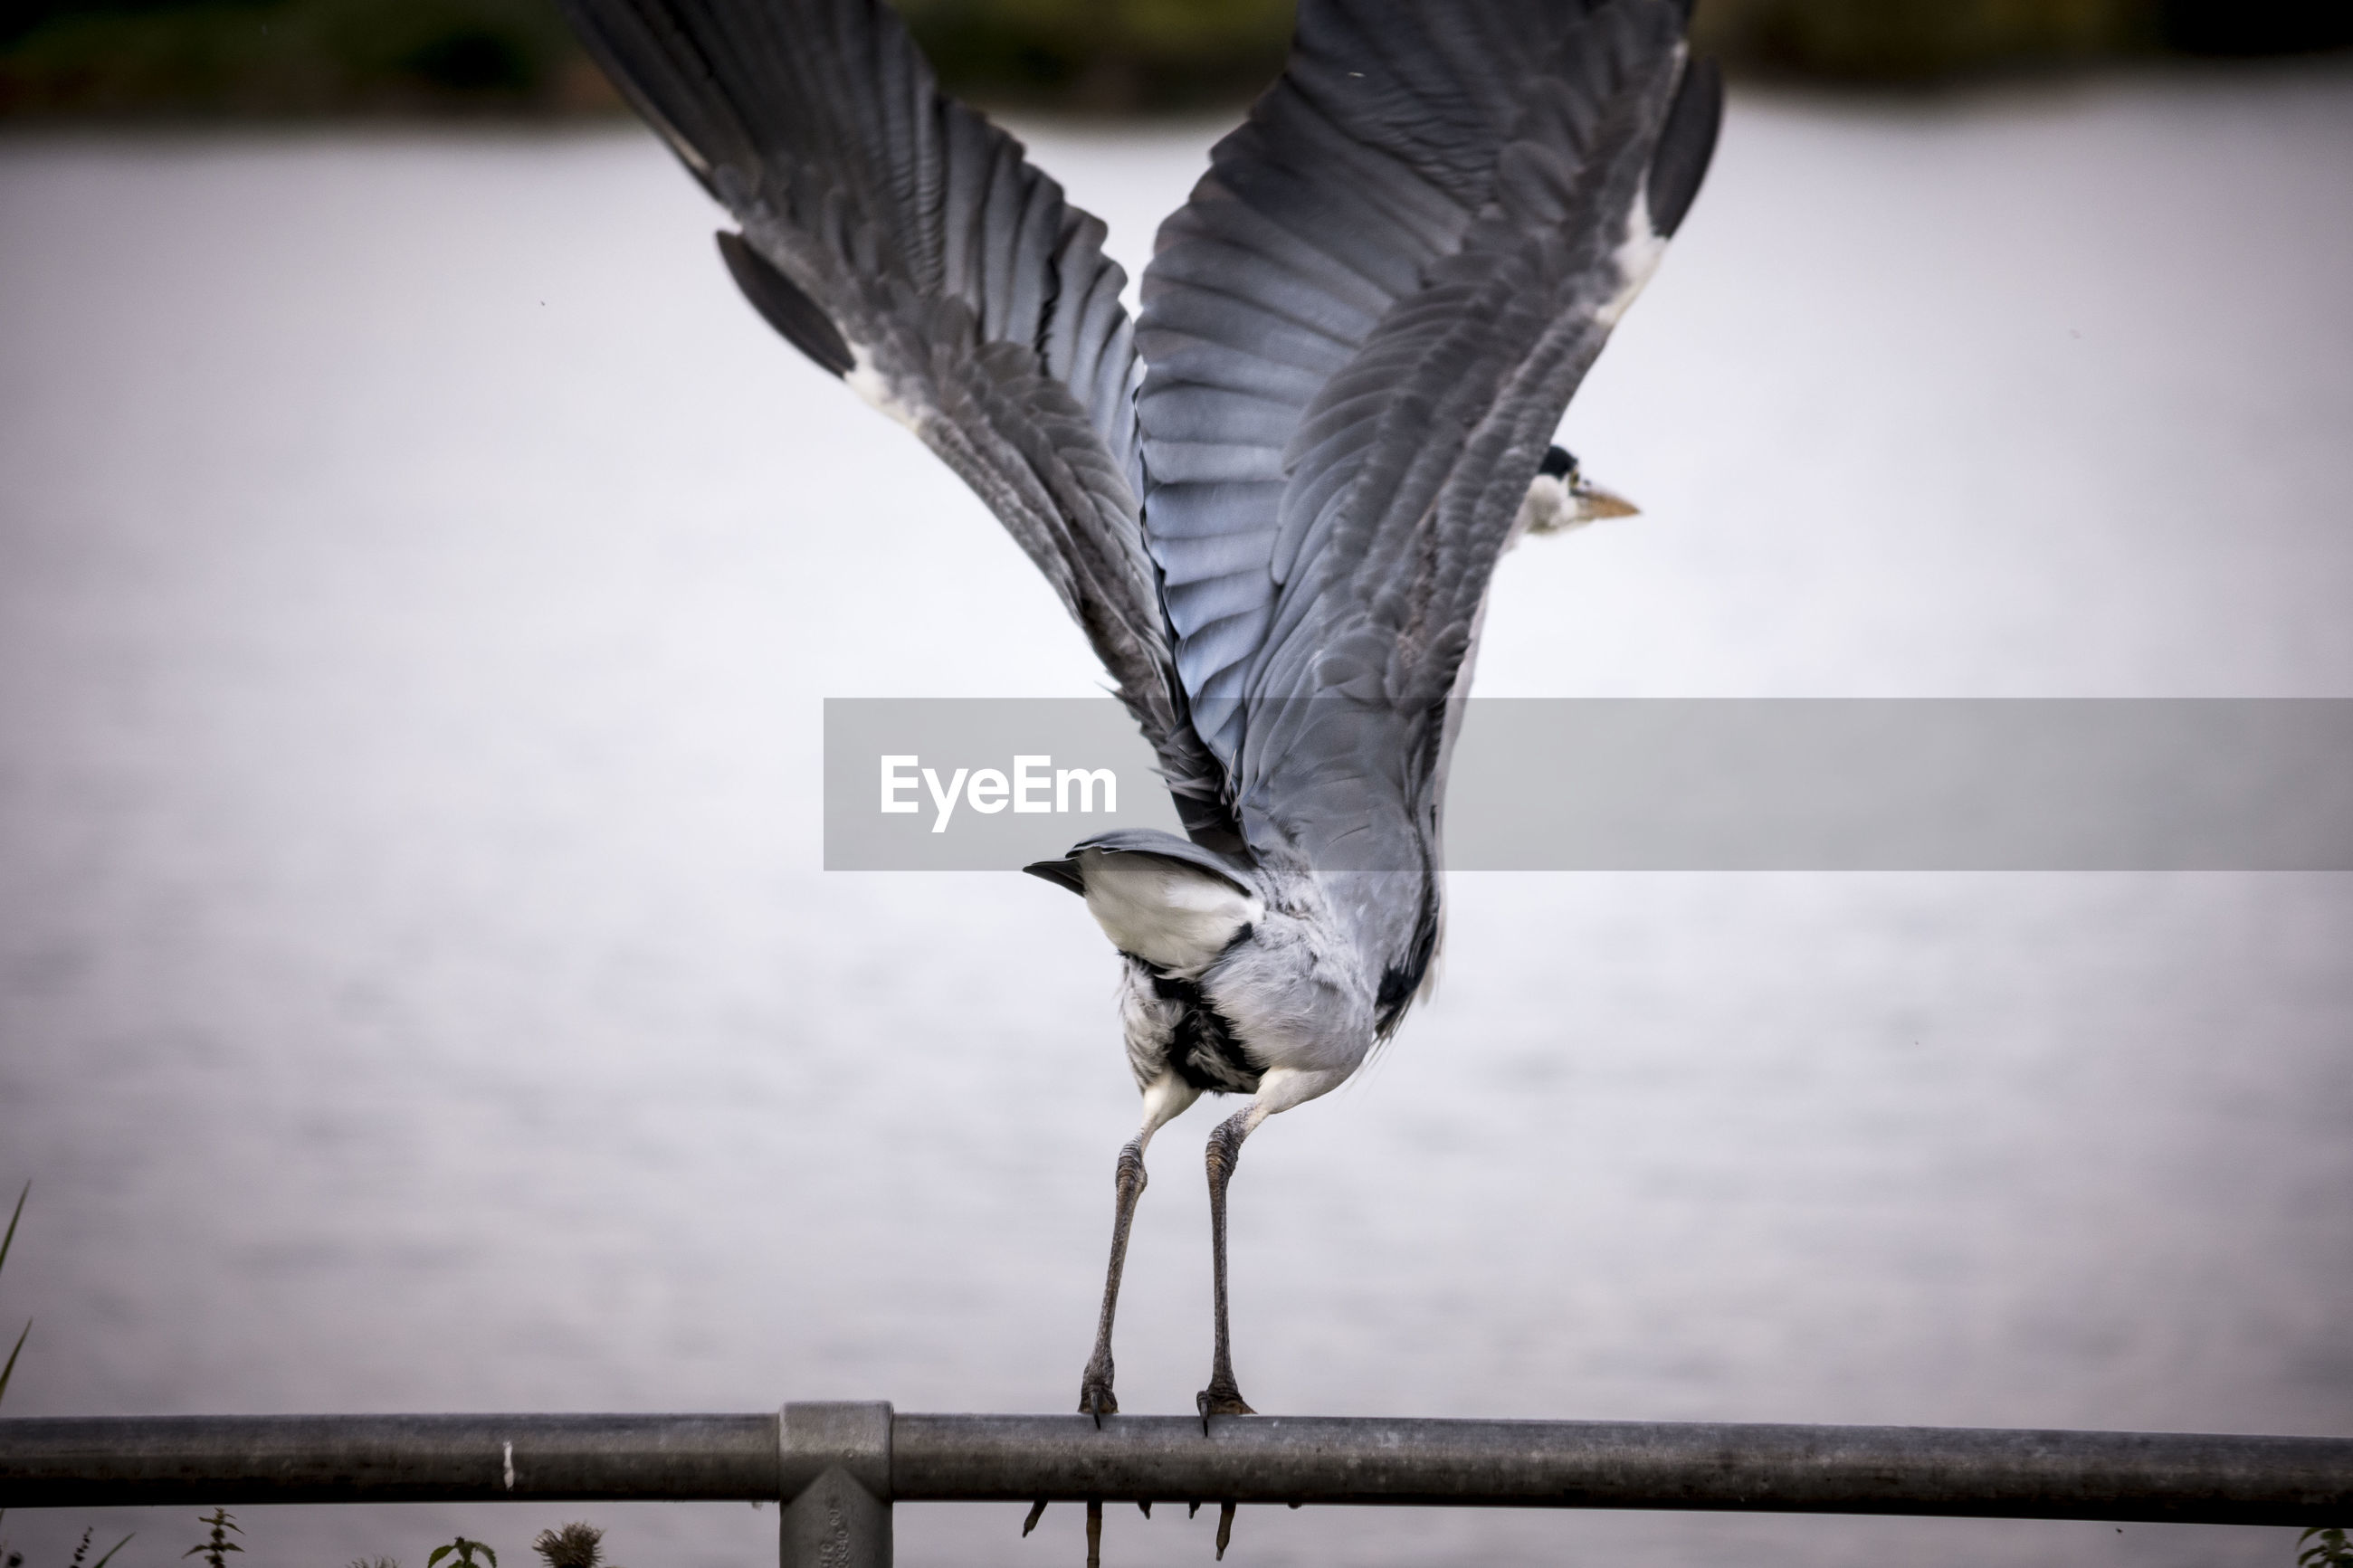 CLOSE-UP OF BIRD PERCHING ON POLE AGAINST SKY